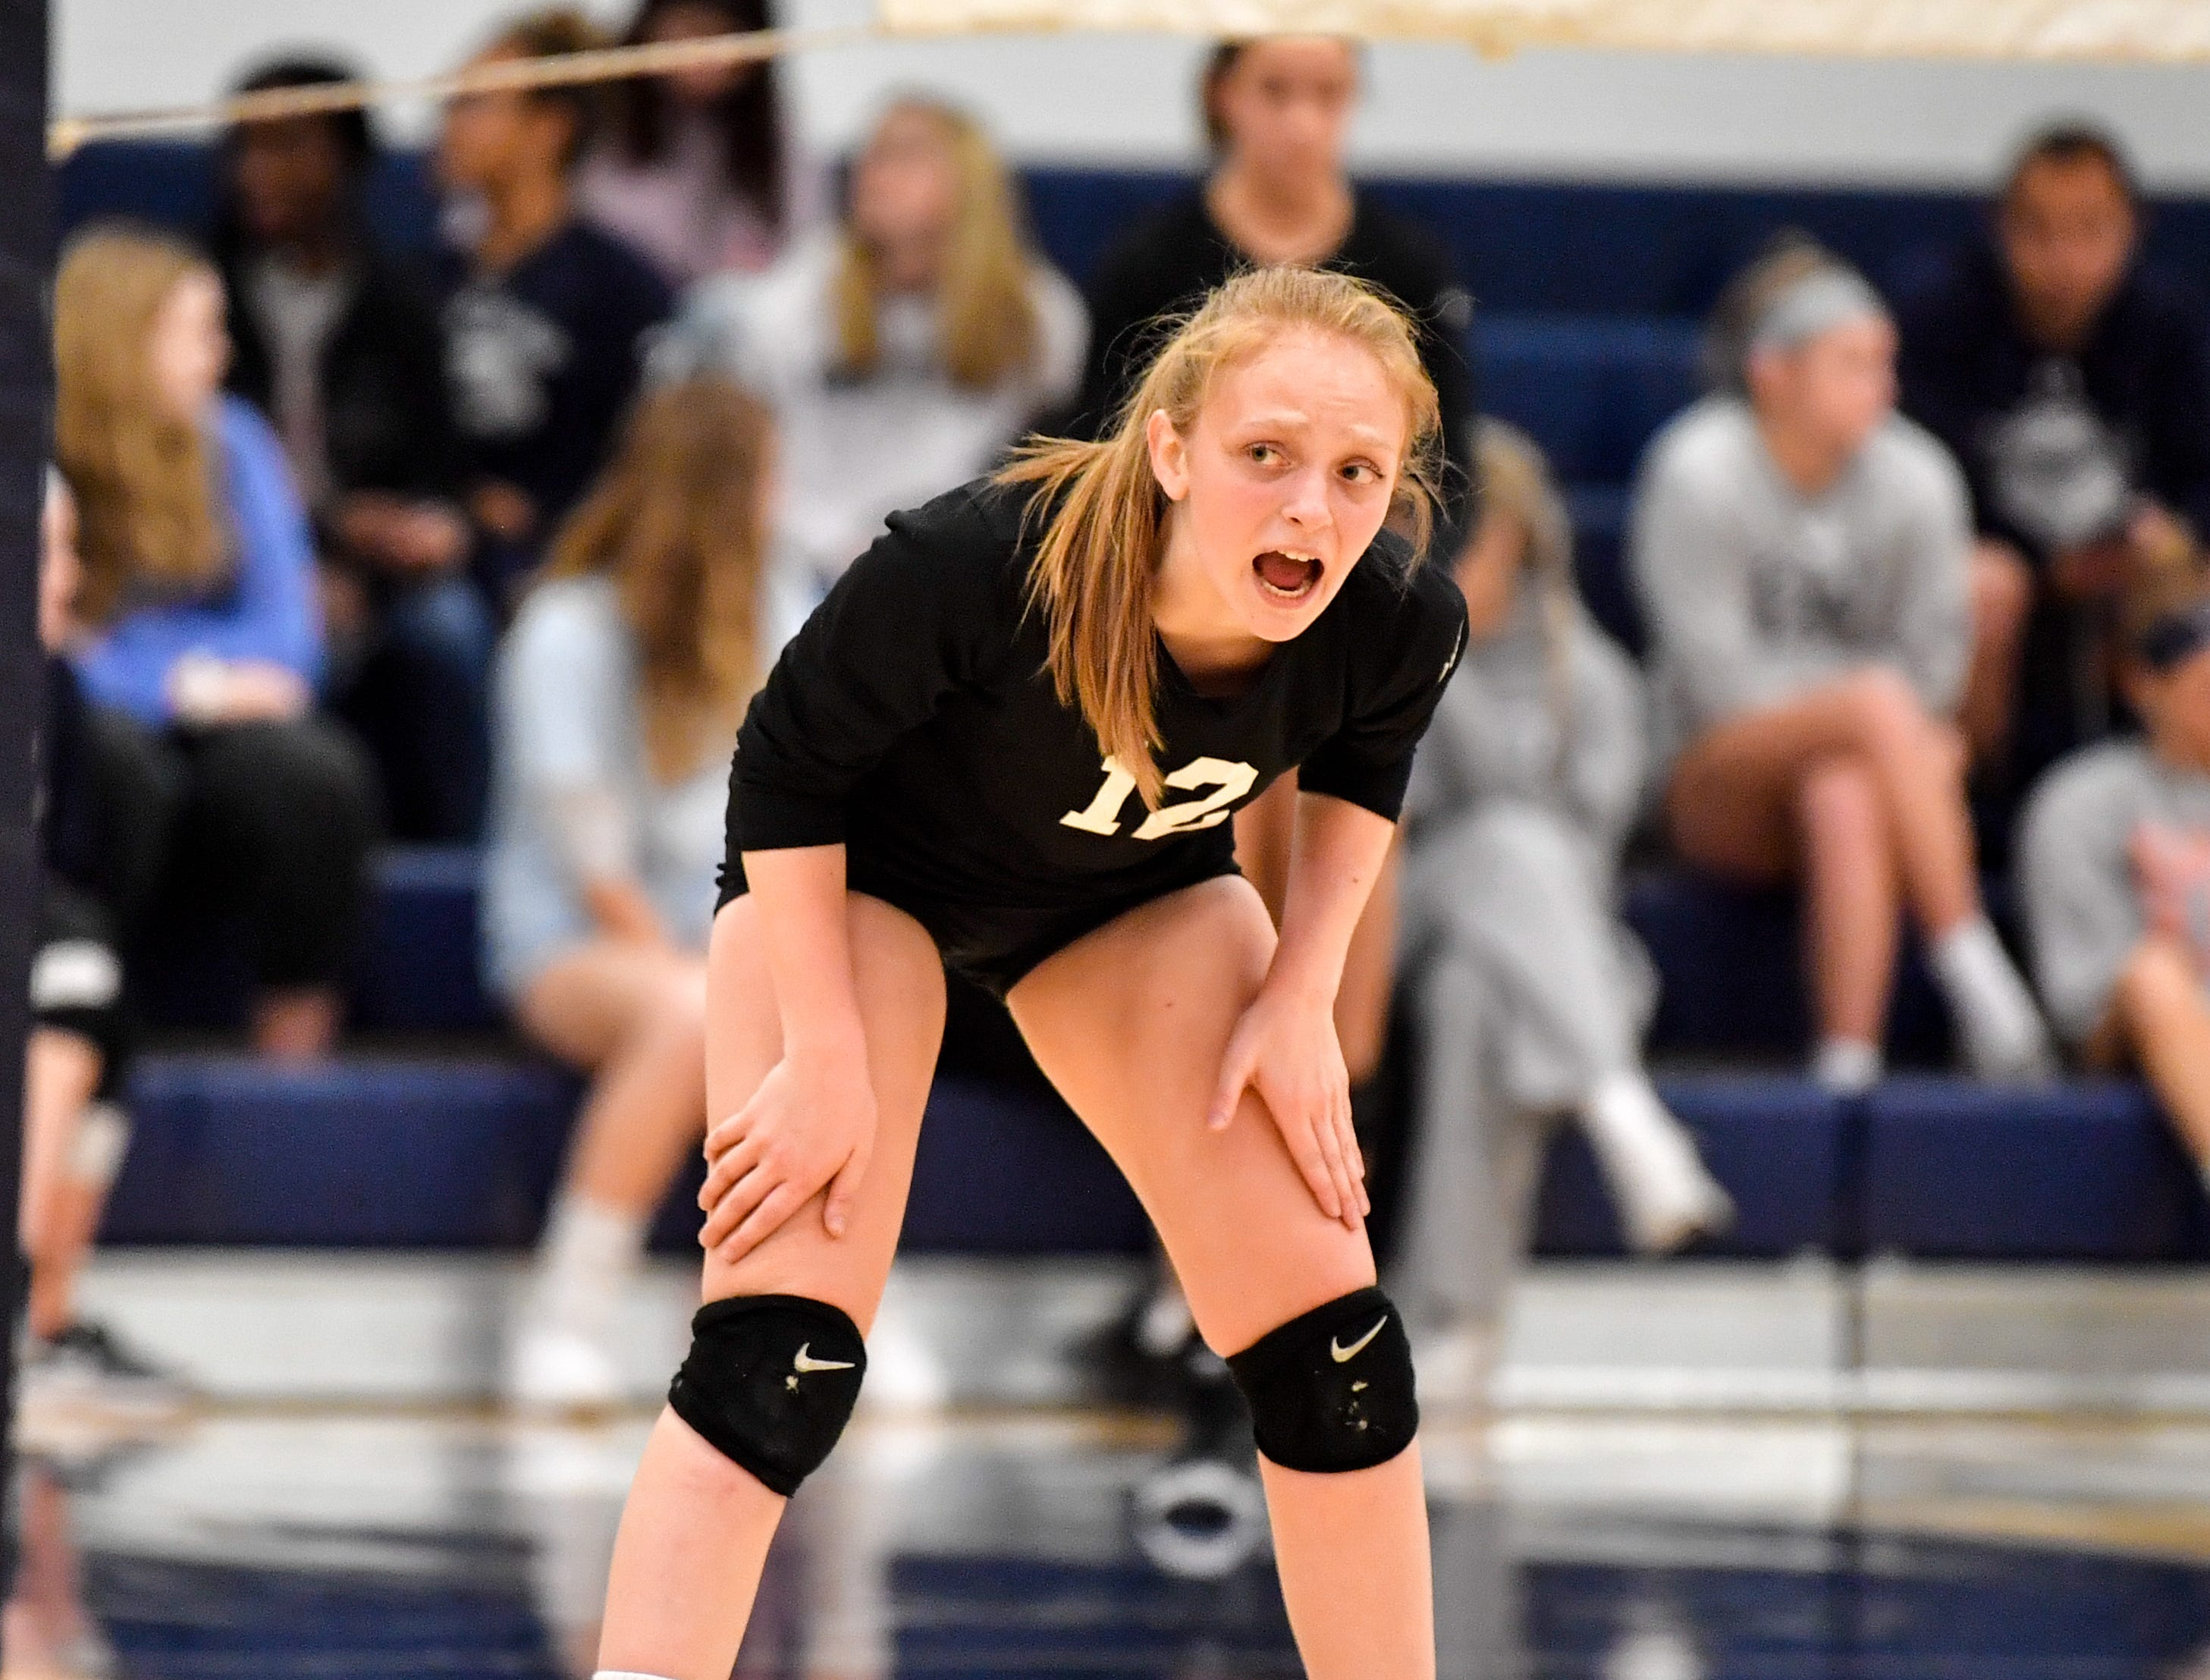 Lauren Guyer (12) motivates her team during the District 3 Class 3A girls' volleyball quarterfinals between Dover and York Suburban at West York High School, October 30, 2018. The Eagles defeated the Trojans 3-2.